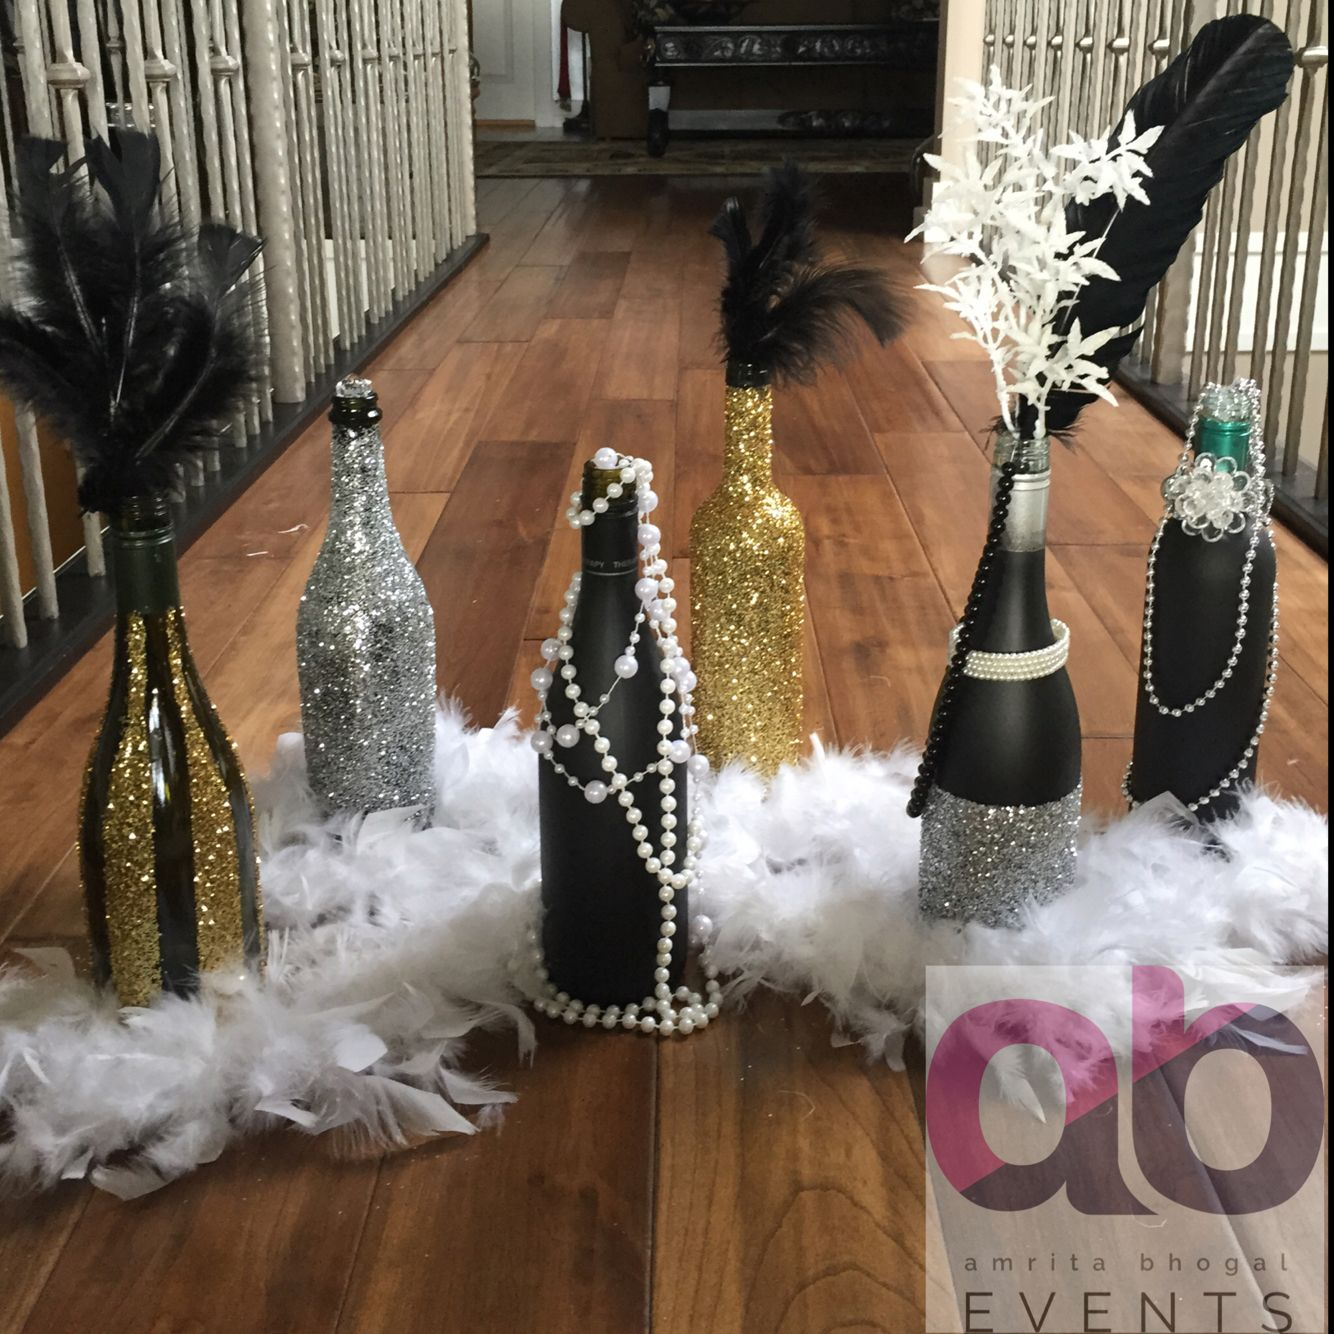 A Great Gatsby Theme Decor Sparkles Bottles Pearls Feathers